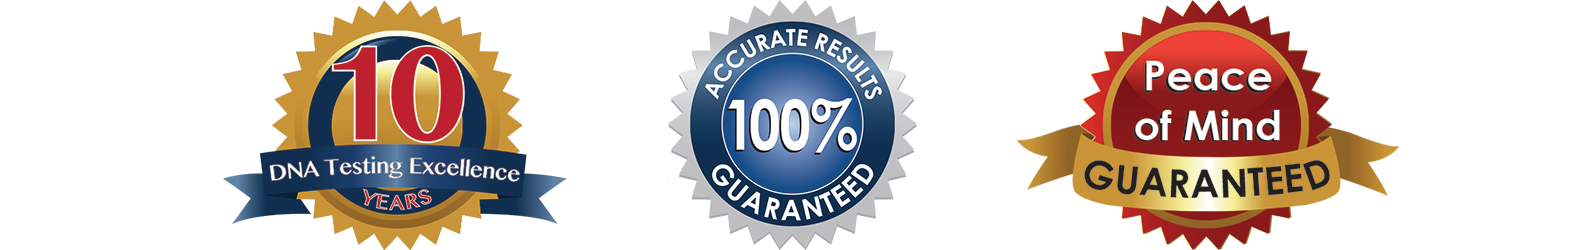 10 DNA testing excellence years, Accurate results 100% guaranteed, peace of mind guaranteed, BBB Accredited business, and A plus